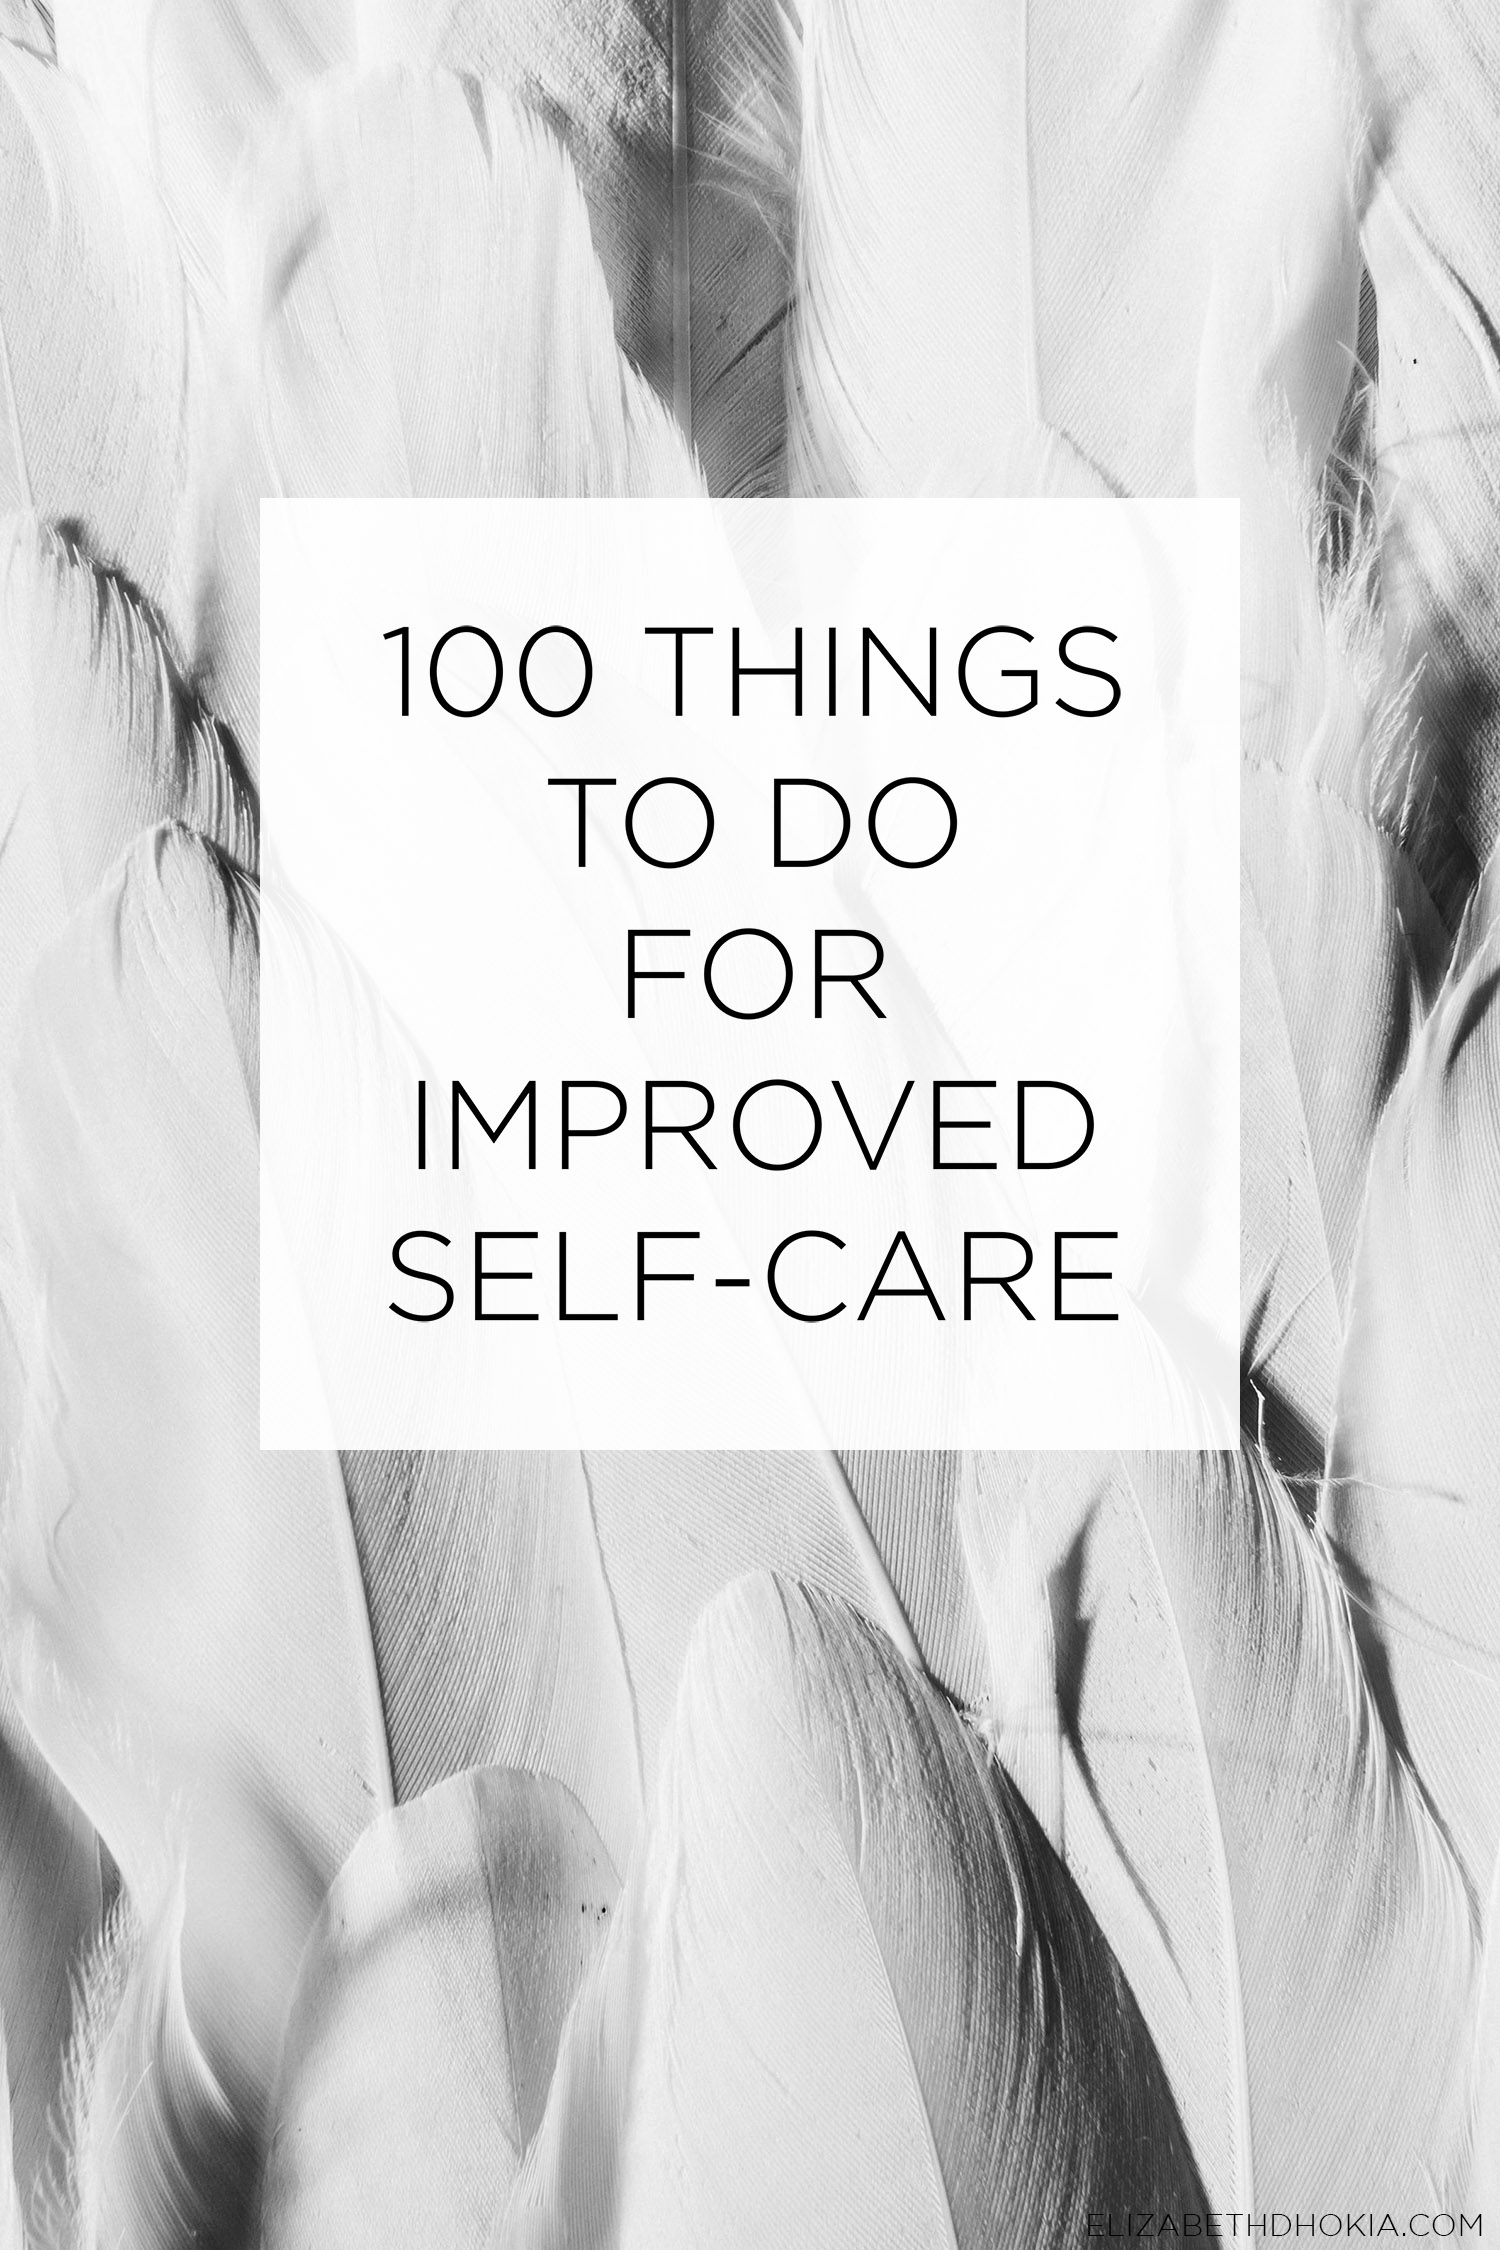 100 THINGS TO DO FOR SELF CARE